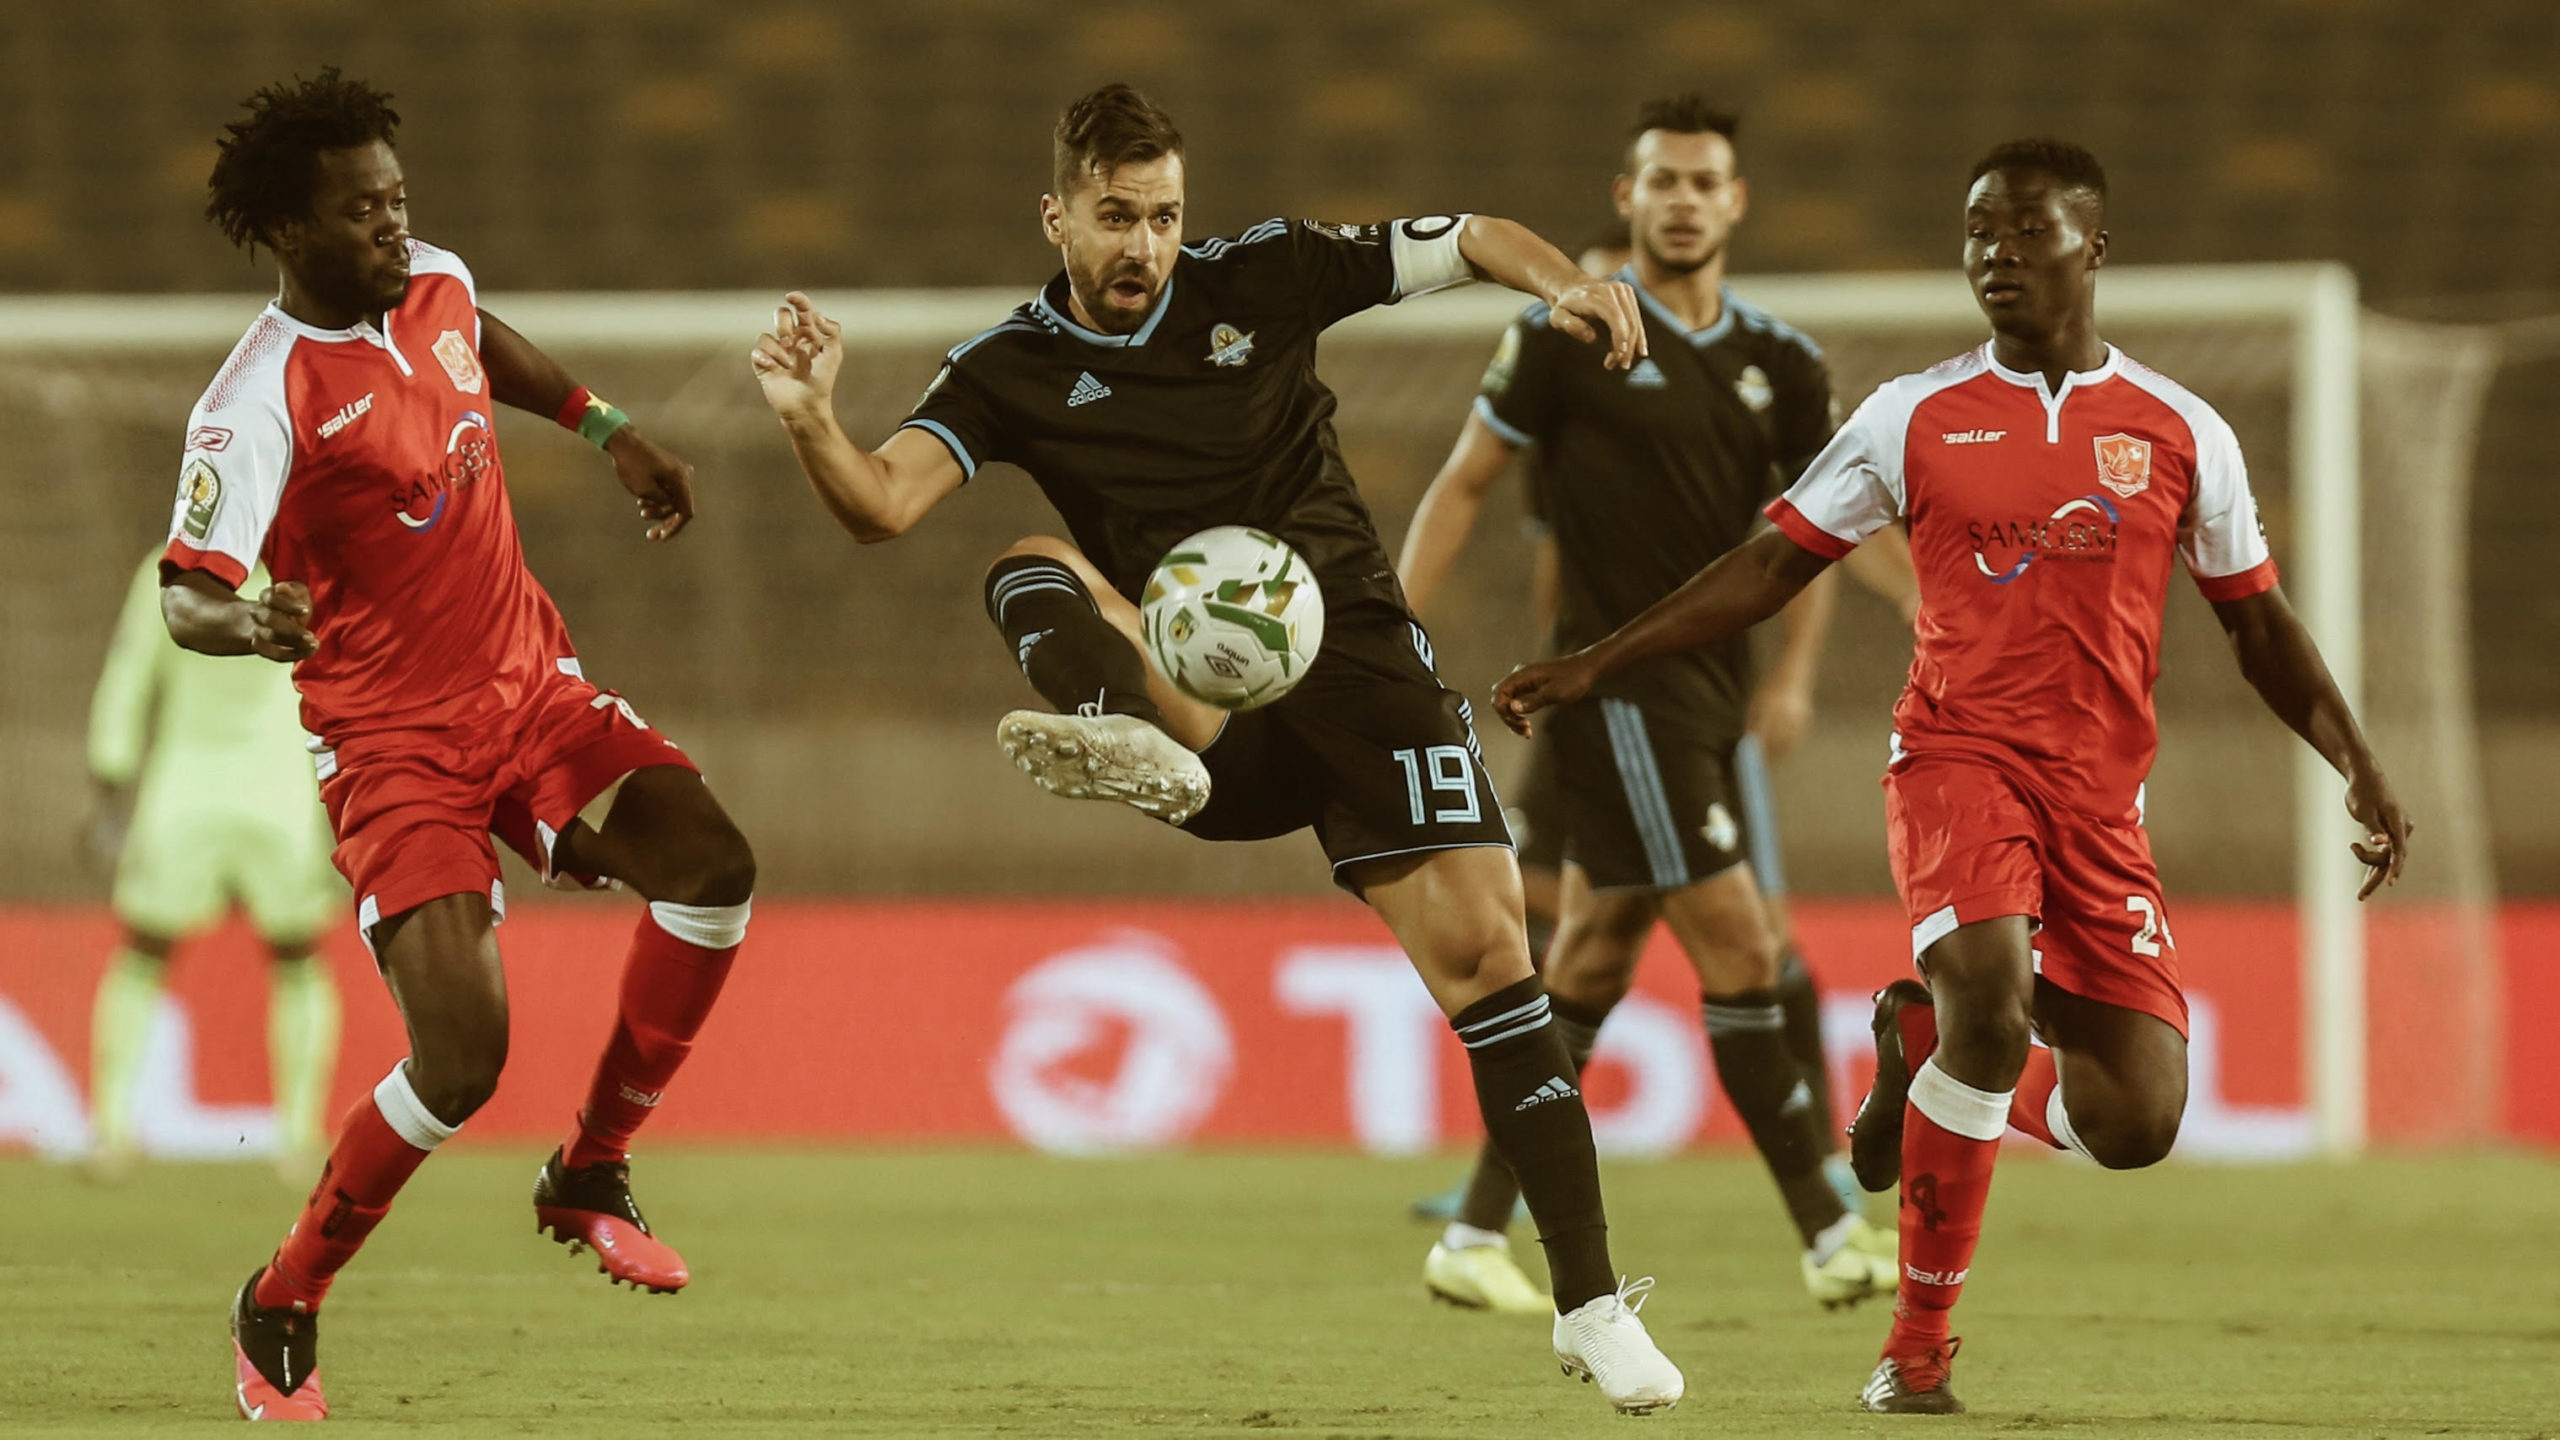 Late goals inspire Pyramids to CAF Confed Cup final